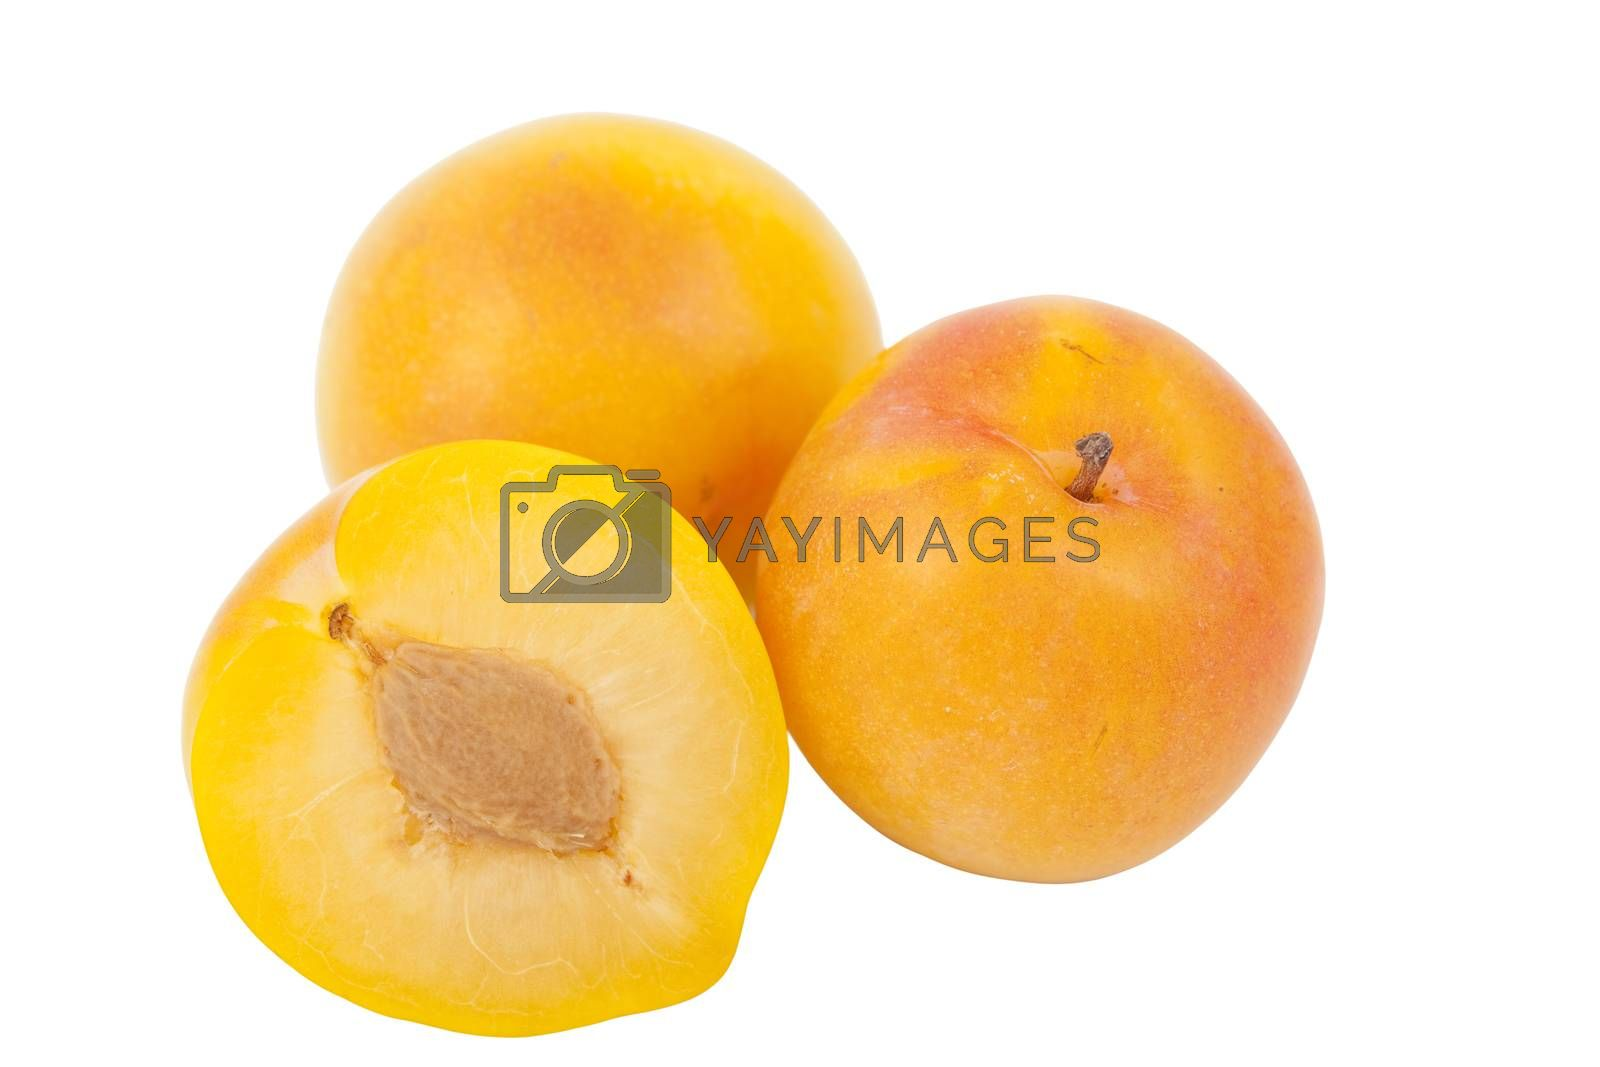 Royalty free image of yellow plum by dabjola